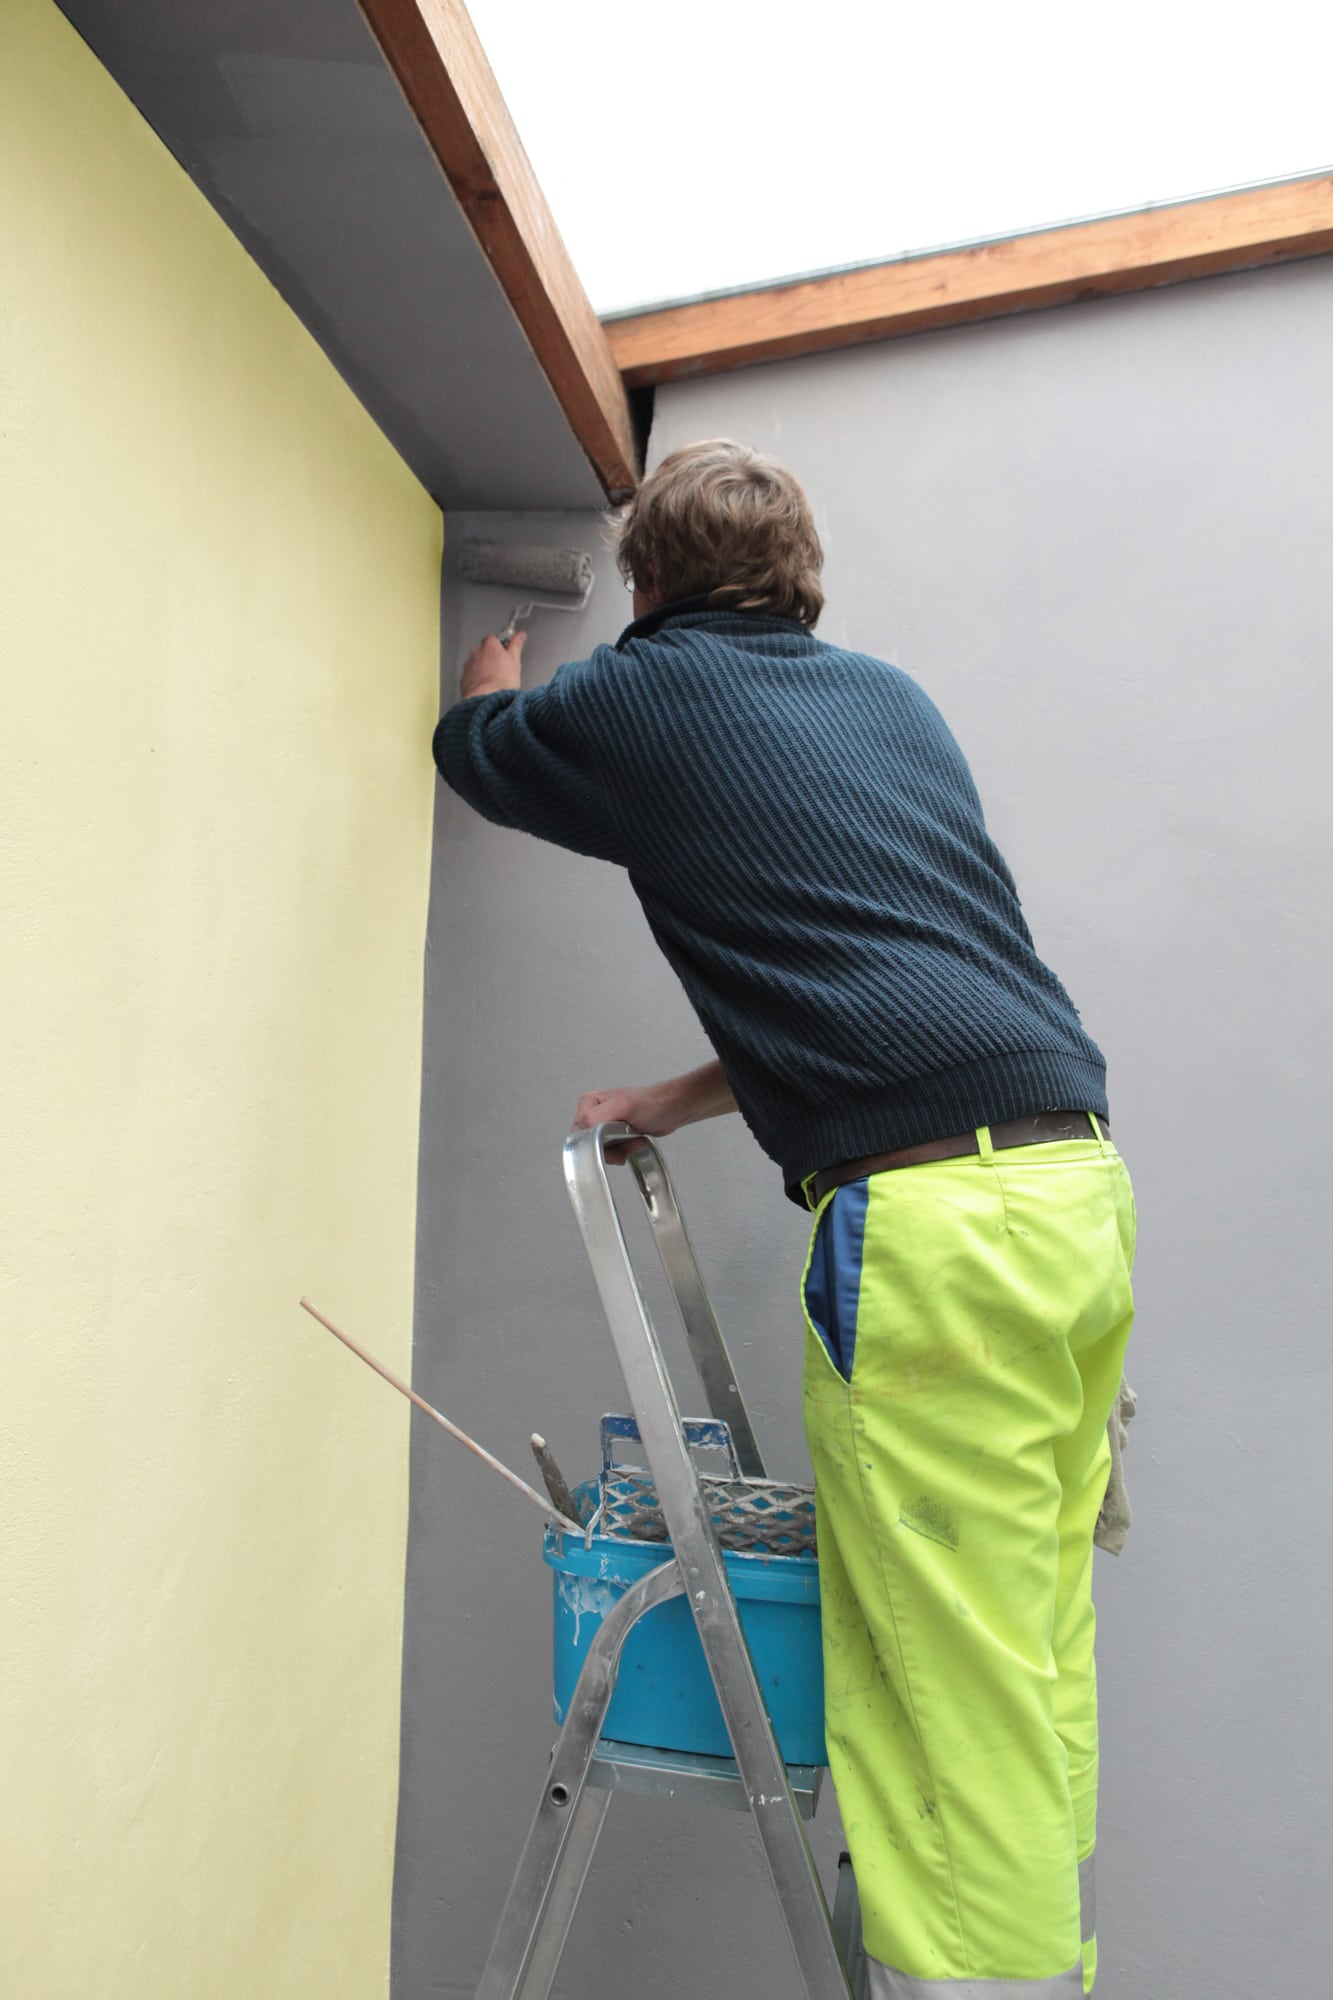 What to look for in a house painter